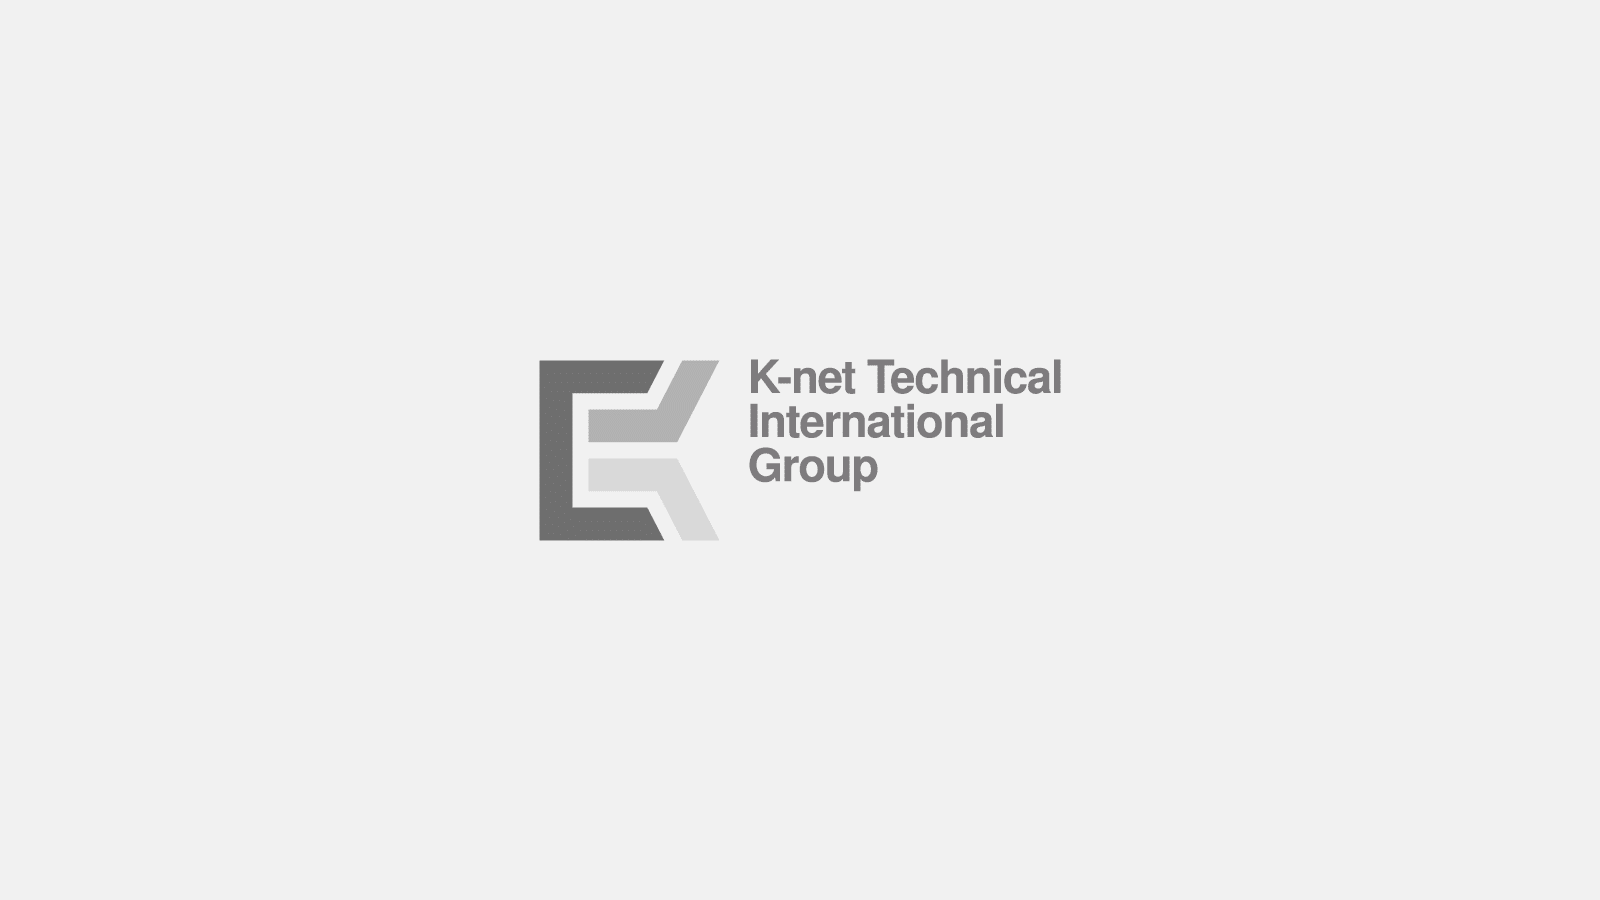 K-net logo on grey background